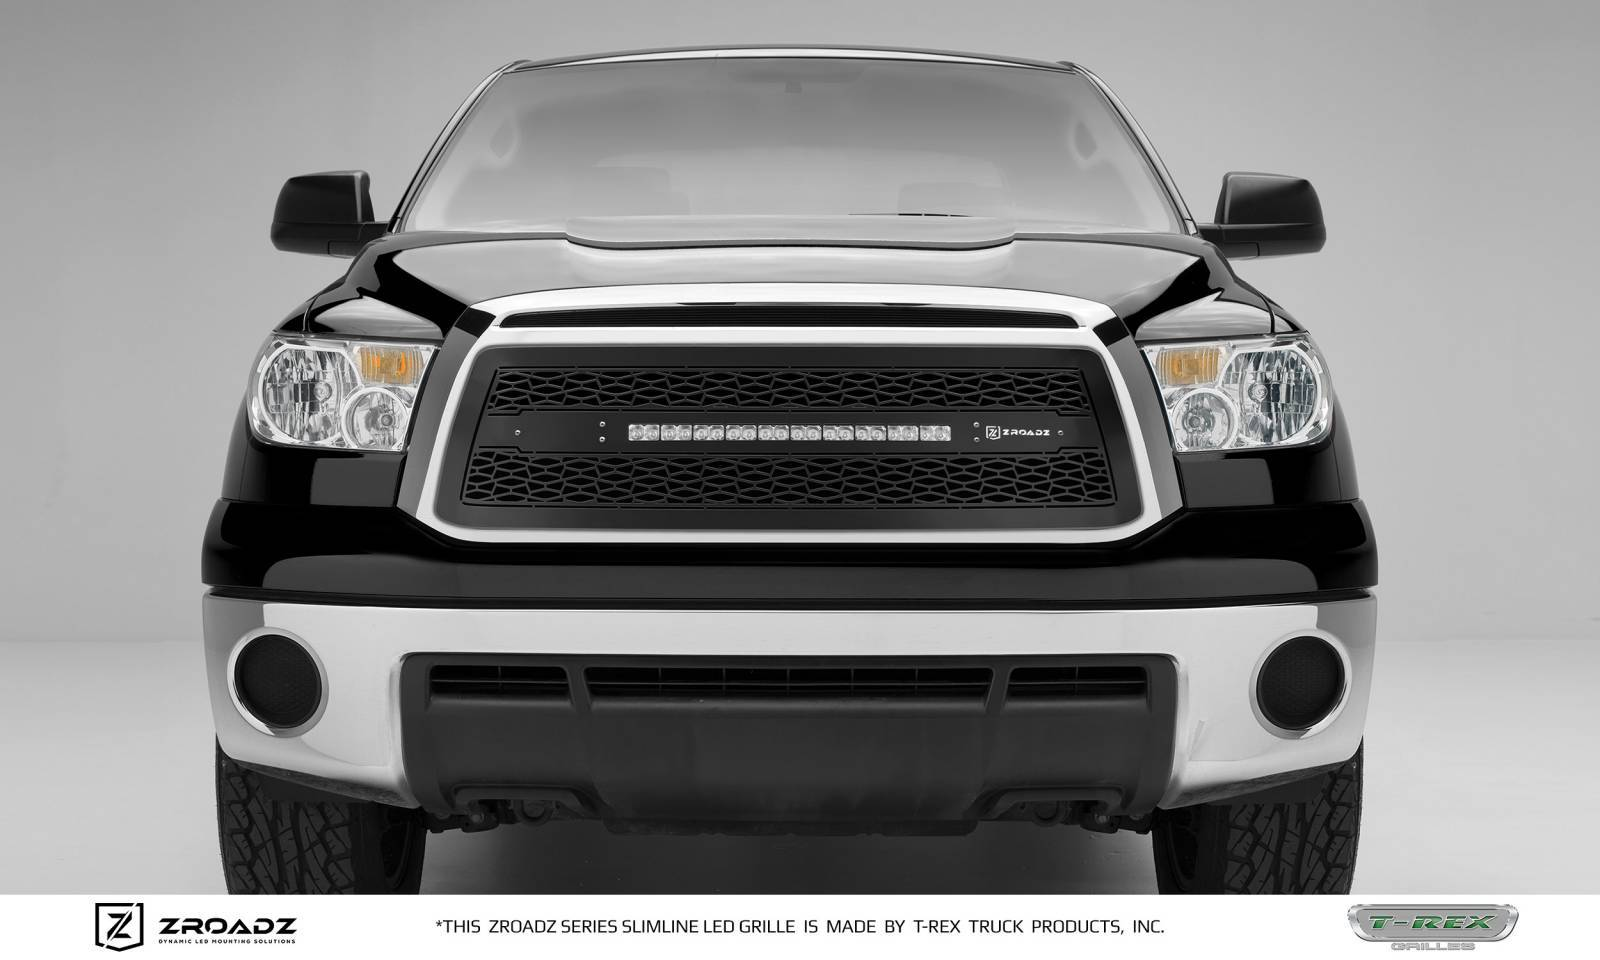 Toyota Tundra - ZROADZ Series - Main Insert - Grille w/ One 20 Inch Slim Line Single Row LED Light Bar - Includes Universal Wiring Harness - Part# Z319631